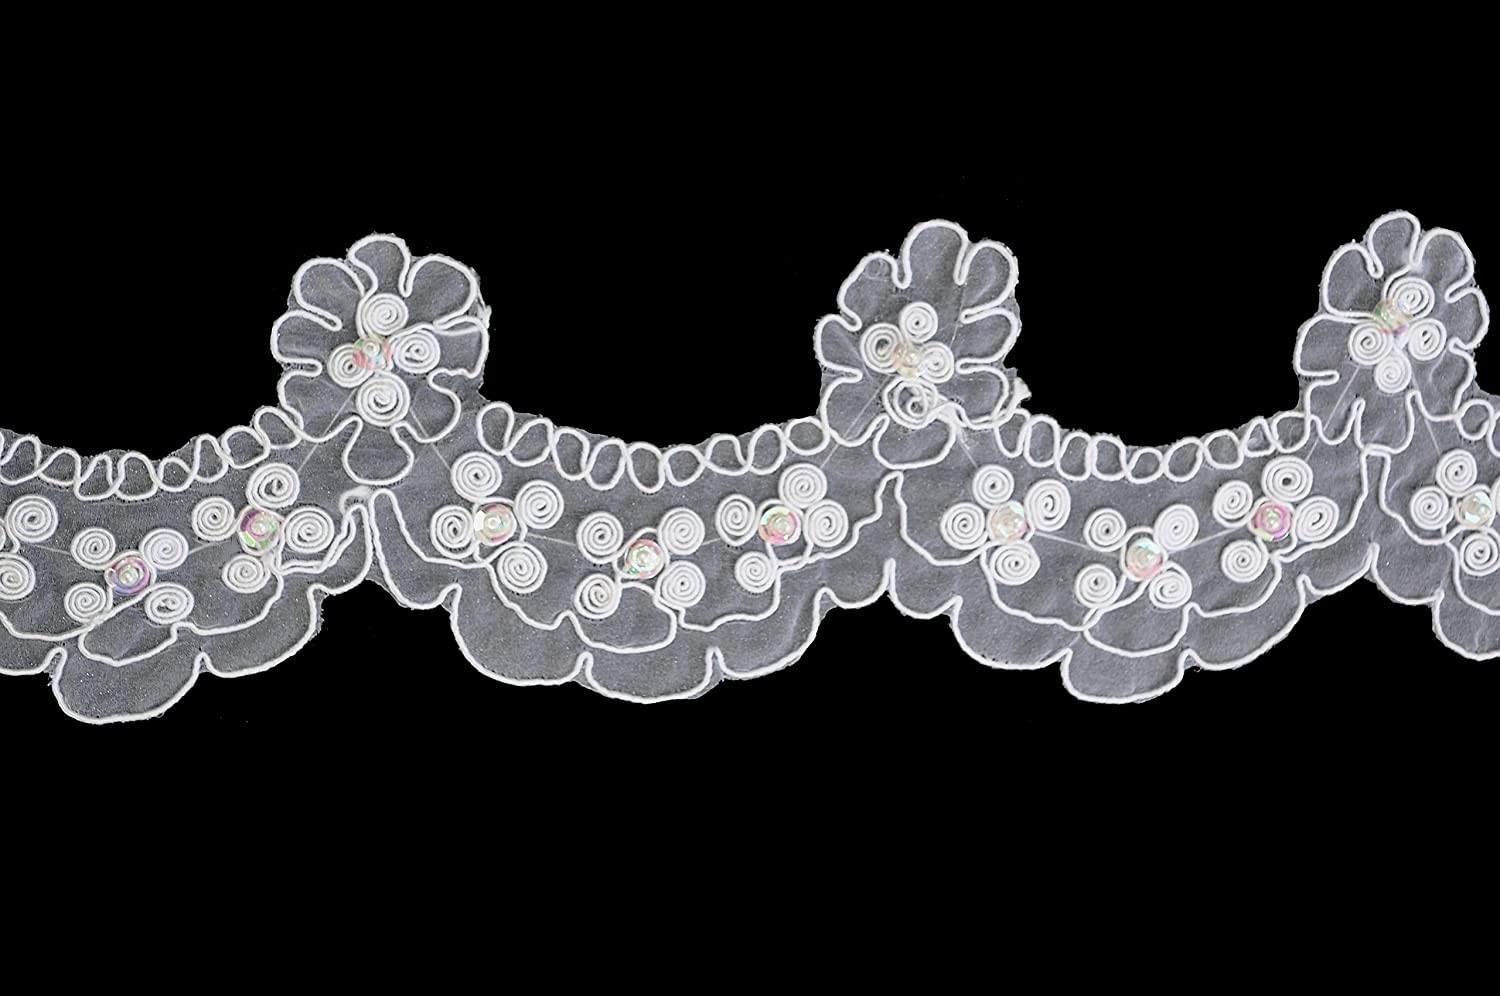 Altotux 3 White Sheer Corded Sequins Floral Lace Scalloped Edge By Yard